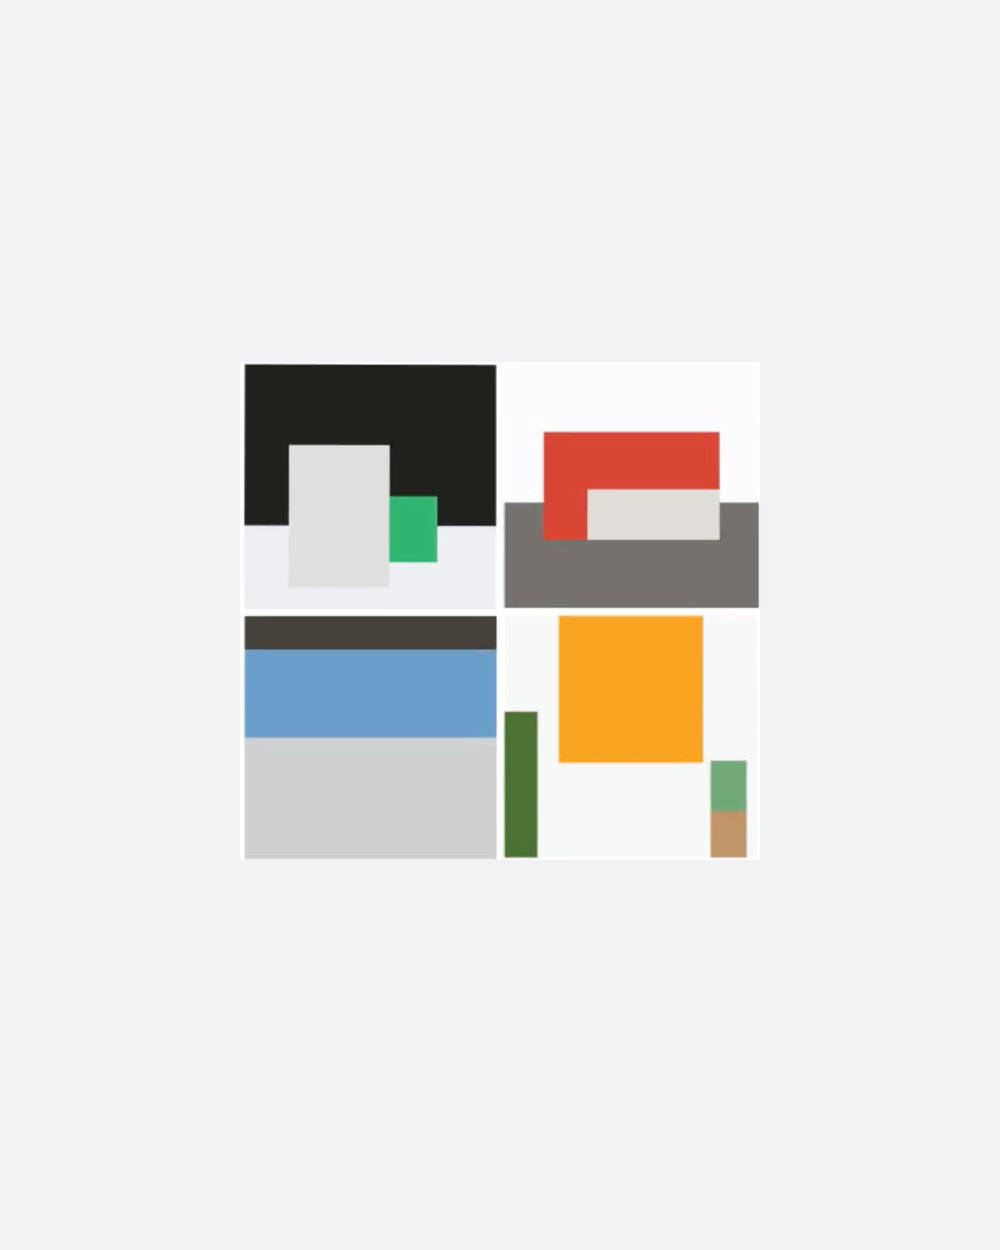 Spread Squarespace Colorgram32.jpg